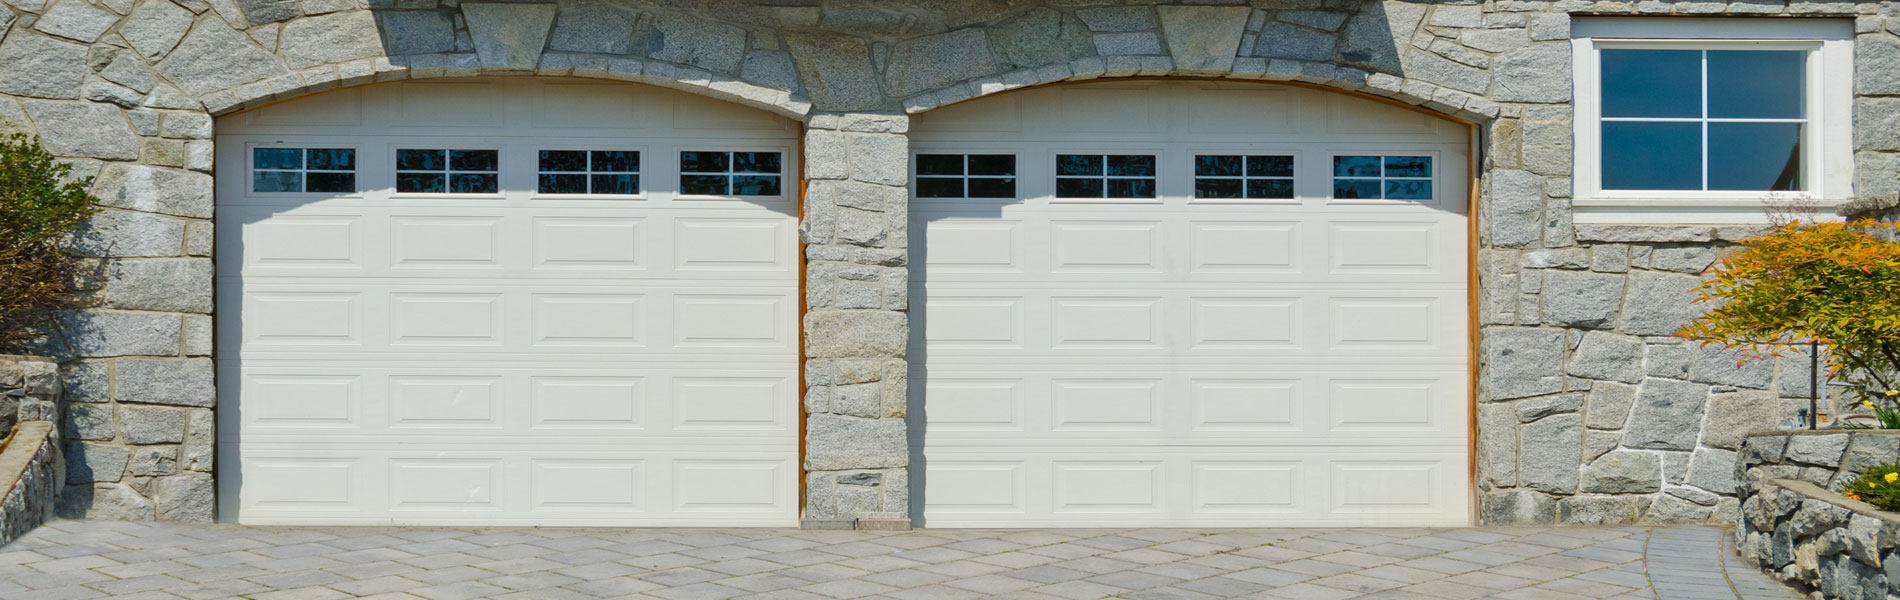 Exclusive Garage Door Repair Service, Ridgefield Park, NJ 201-482-9011